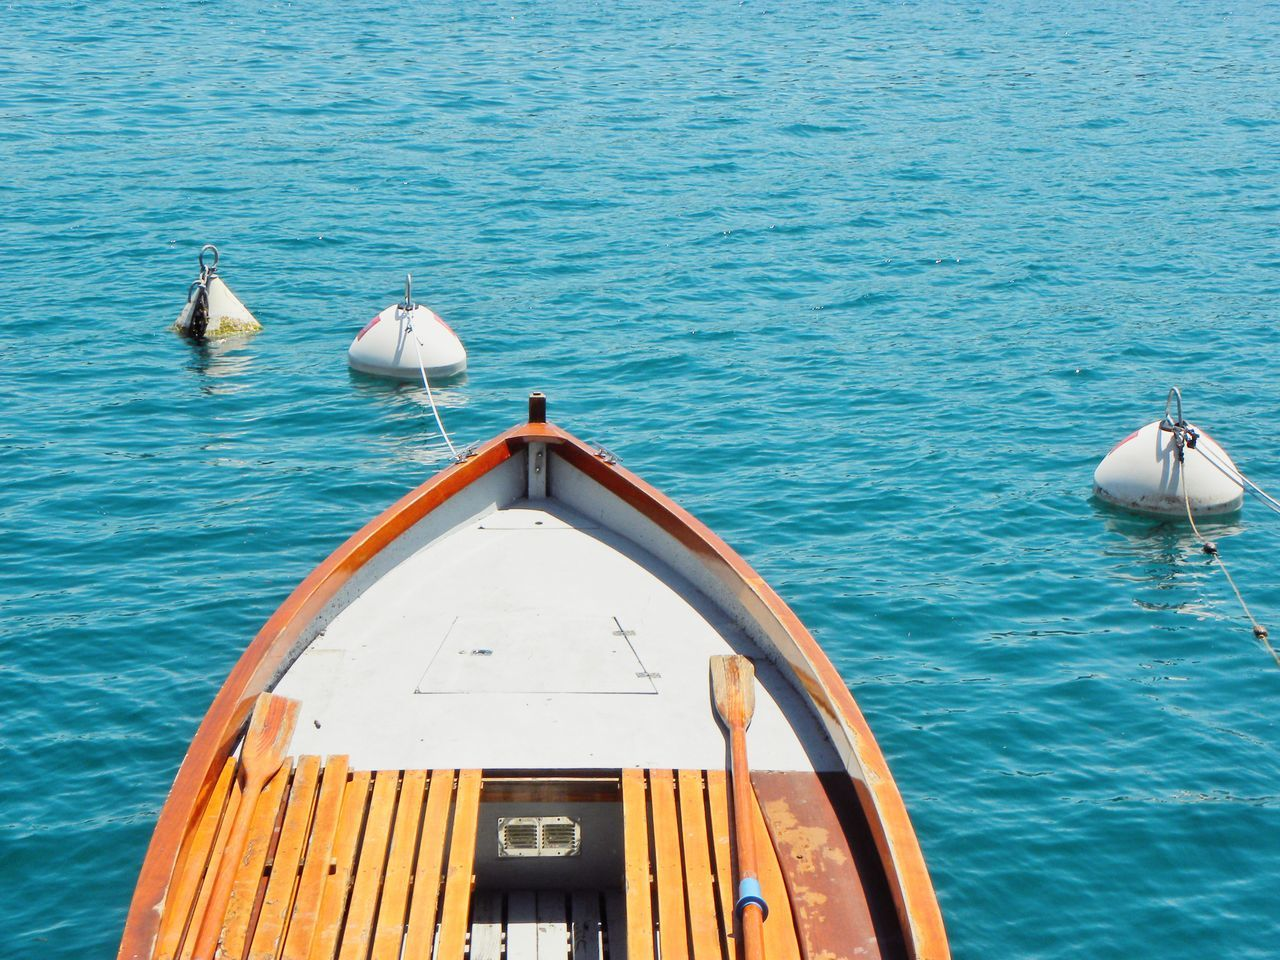 Sea Water No People Nature Day Outdoors Nautical Vessel High Angle View Tranquility Beach Colours Summer Time  Boat Part Of A Boat Relaxing Blue Sea Summer Time  Summer Blue Colour Quite Place Calm Water Calm Environment Buoy Buoy On The Water Sommergefühle